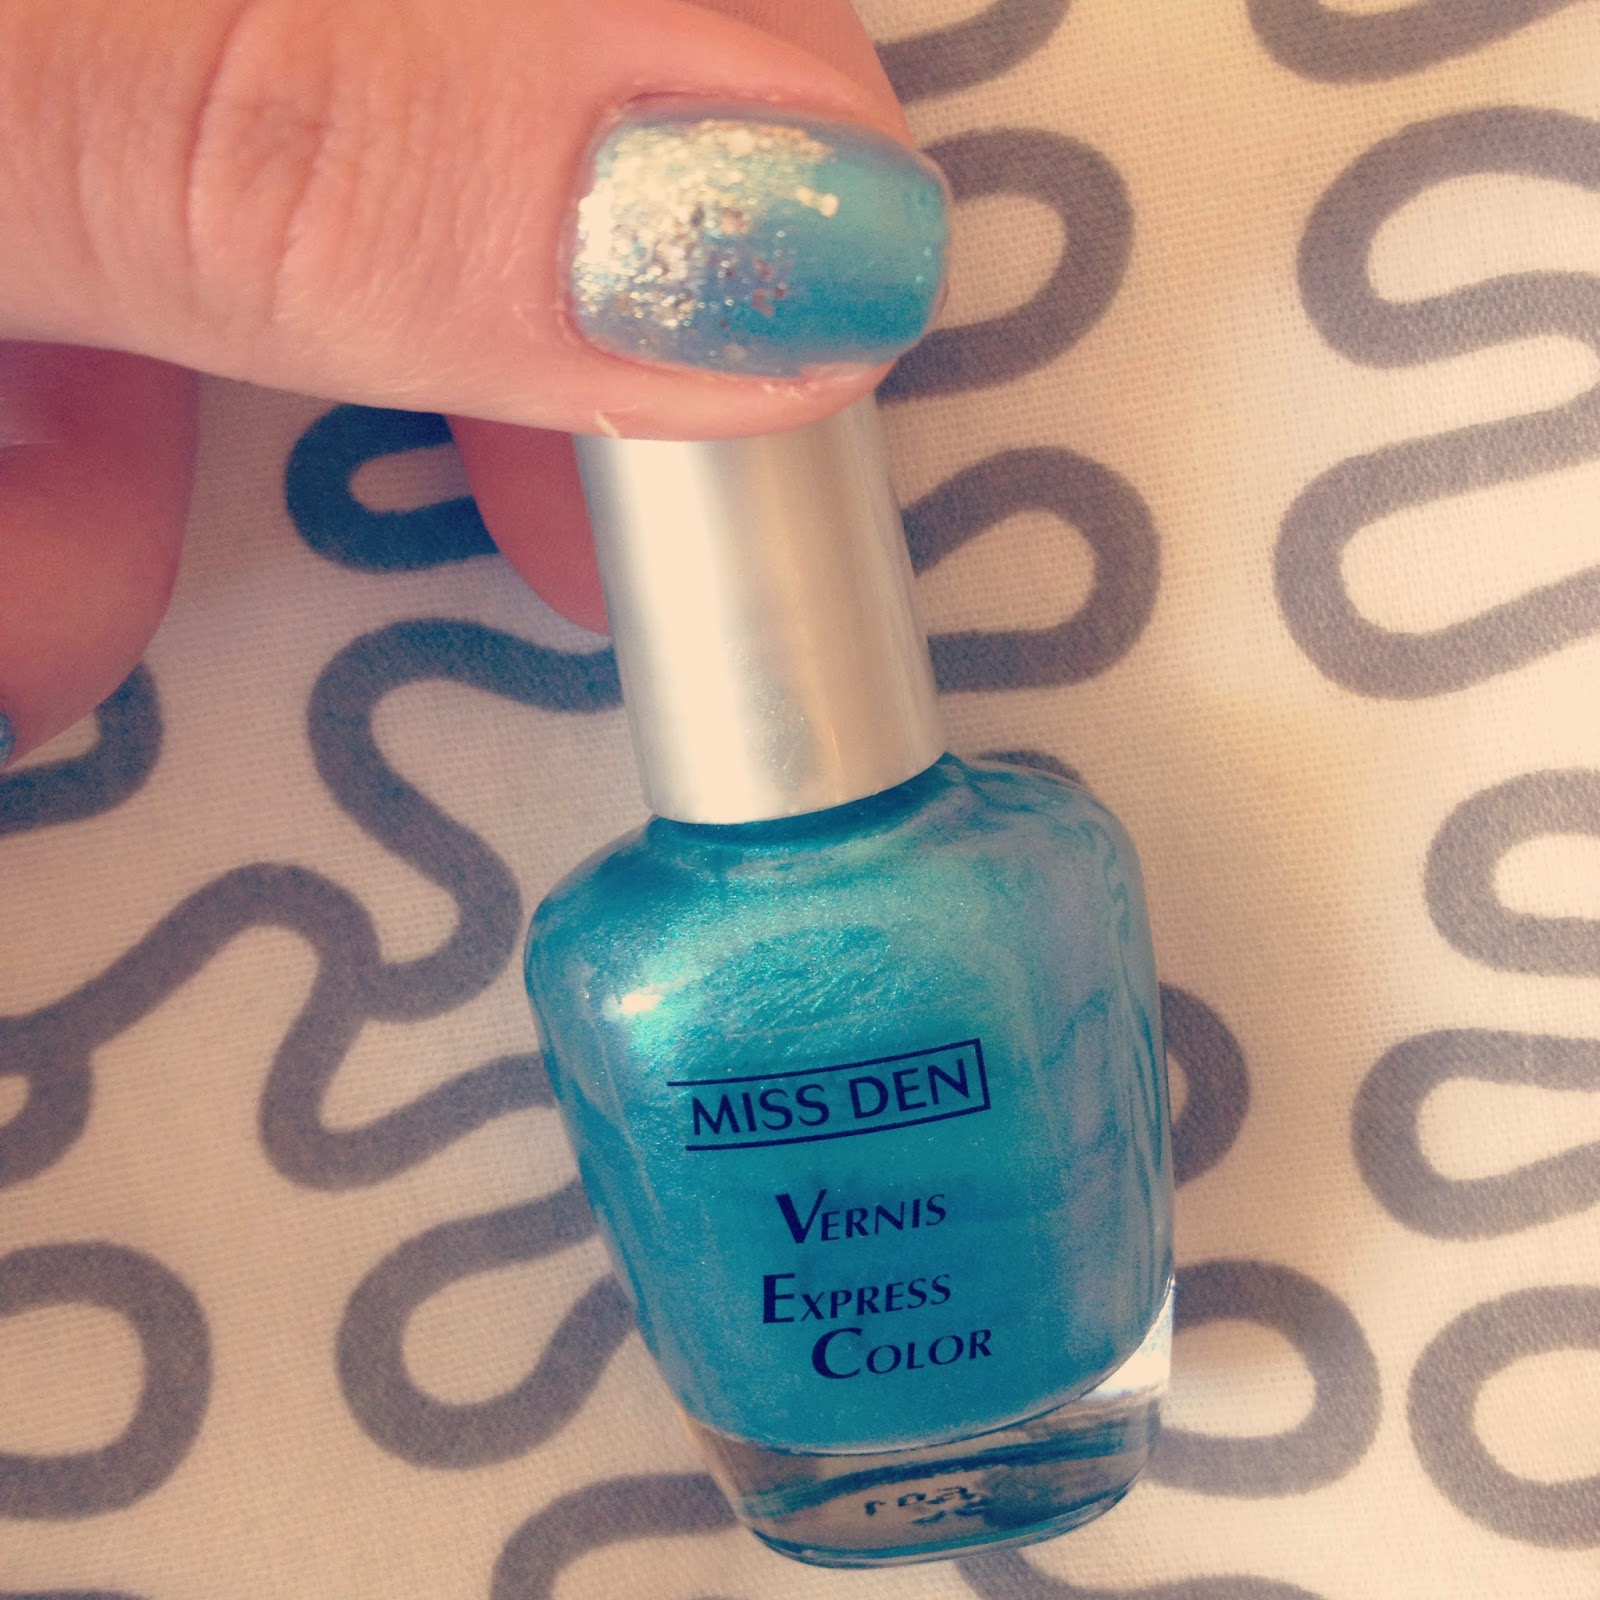 Miss Den Vernis Express Color Nail Polish Blue Star